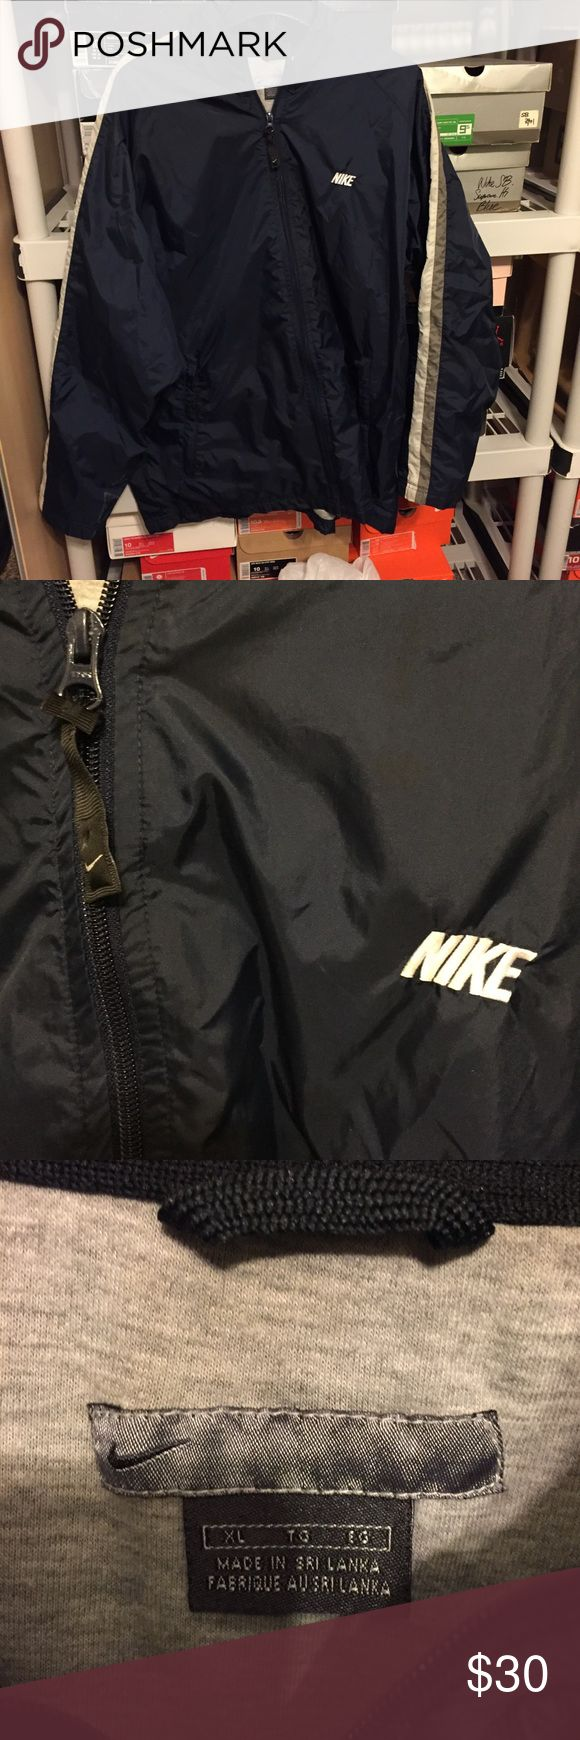 Mens Nike Athletic Navy Blue Zip Up Jacket Sz XL Men's Nike Vintage Navy Blue Windbreaker Size XL (refer to measurements)Good condition! Pit to pit: 27 inches Neck to bottom: 32 inches If you have any questions please message me thanks! Check out my other listings!! Nike Jackets & Coats Windbreakers